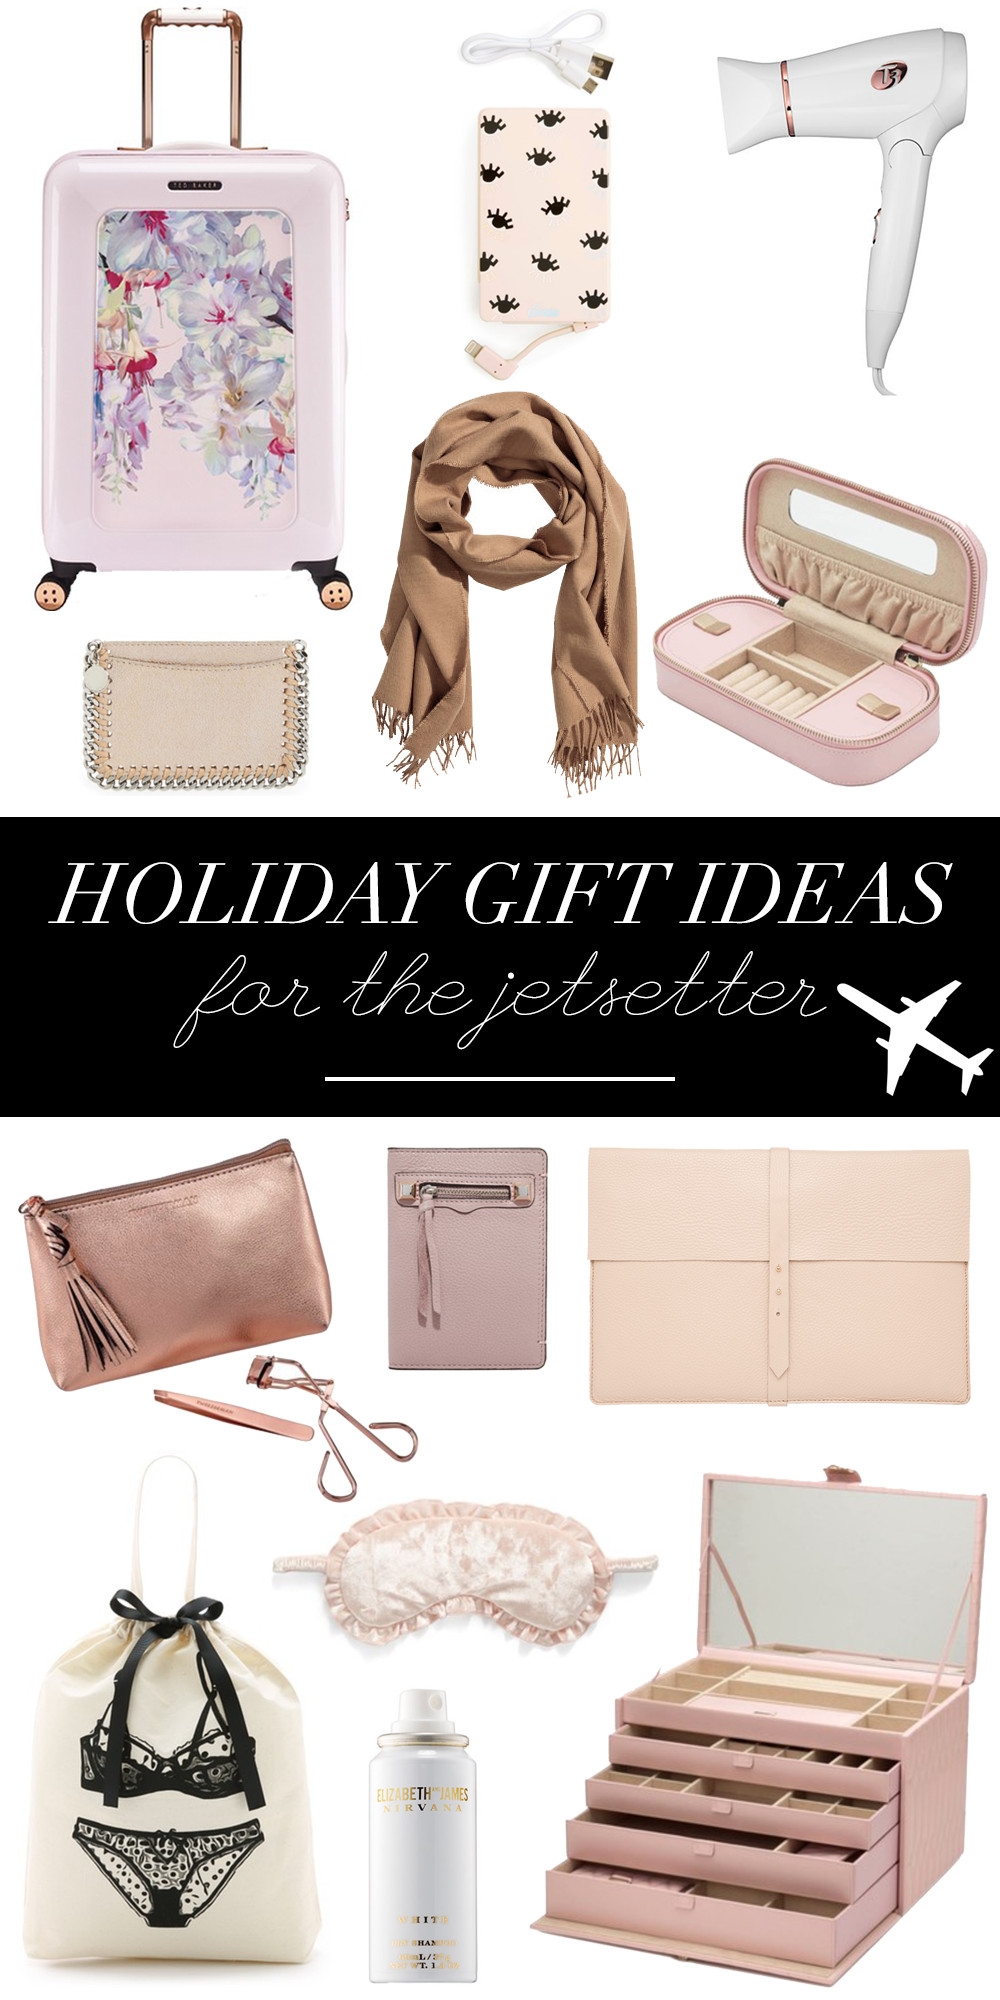 Best ideas about Holiday Gift Ideas For Her . Save or Pin Holiday Gift Ideas For The Jetsetter Money Can Buy Lipstick Now.